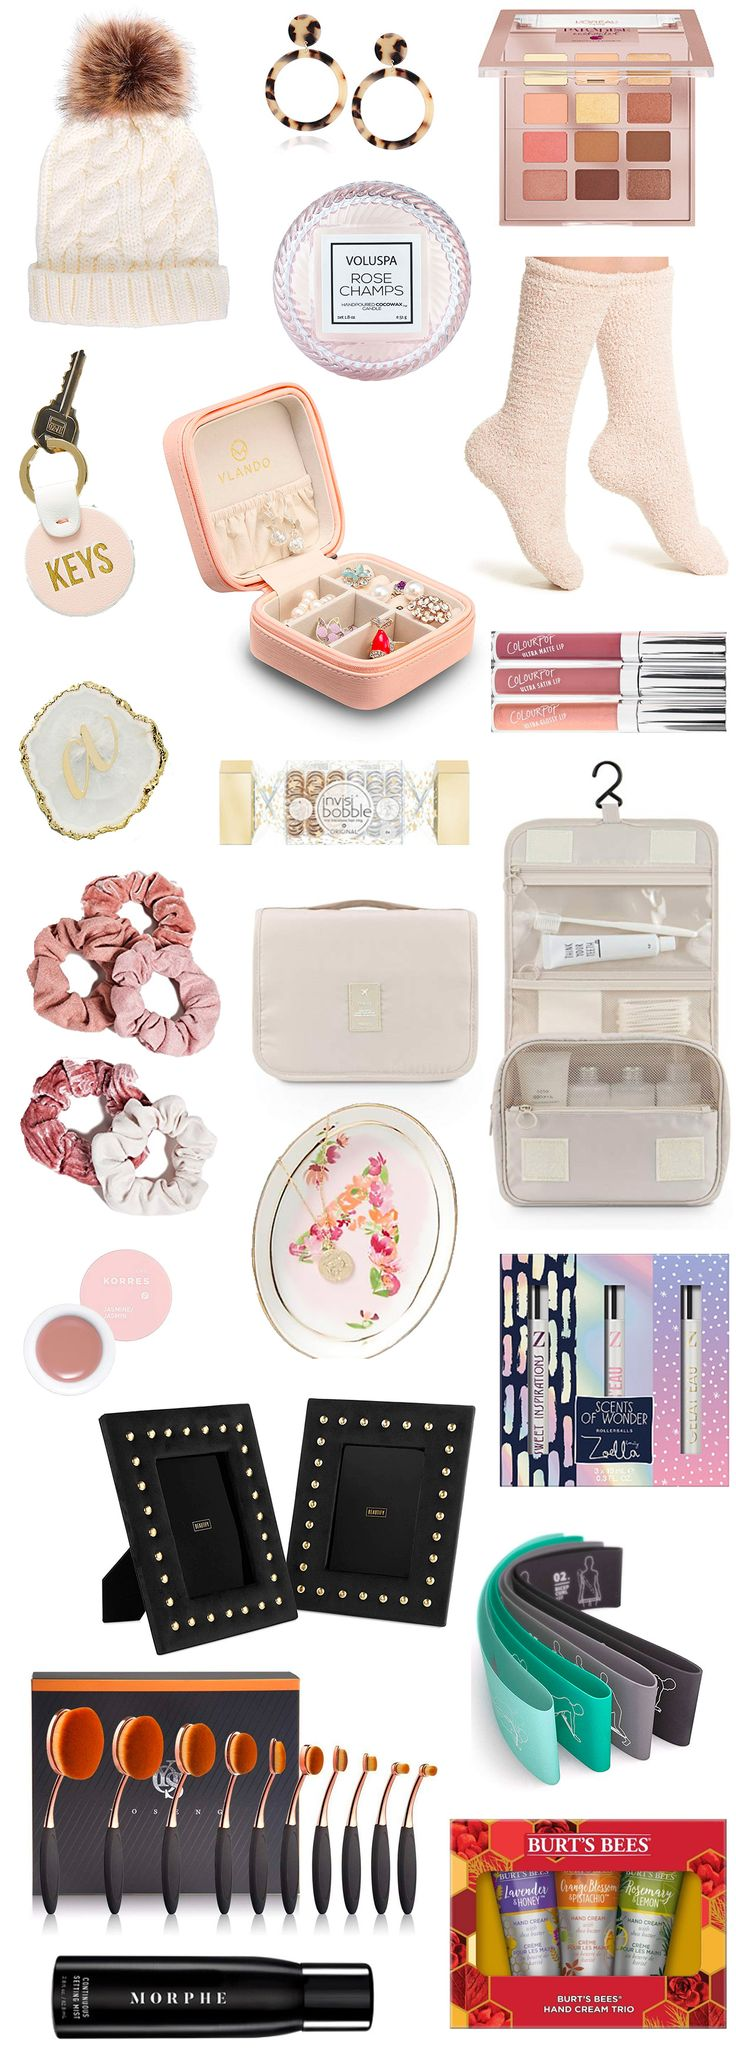 The Best Christmas Gift Ideas For Women Under 15 No